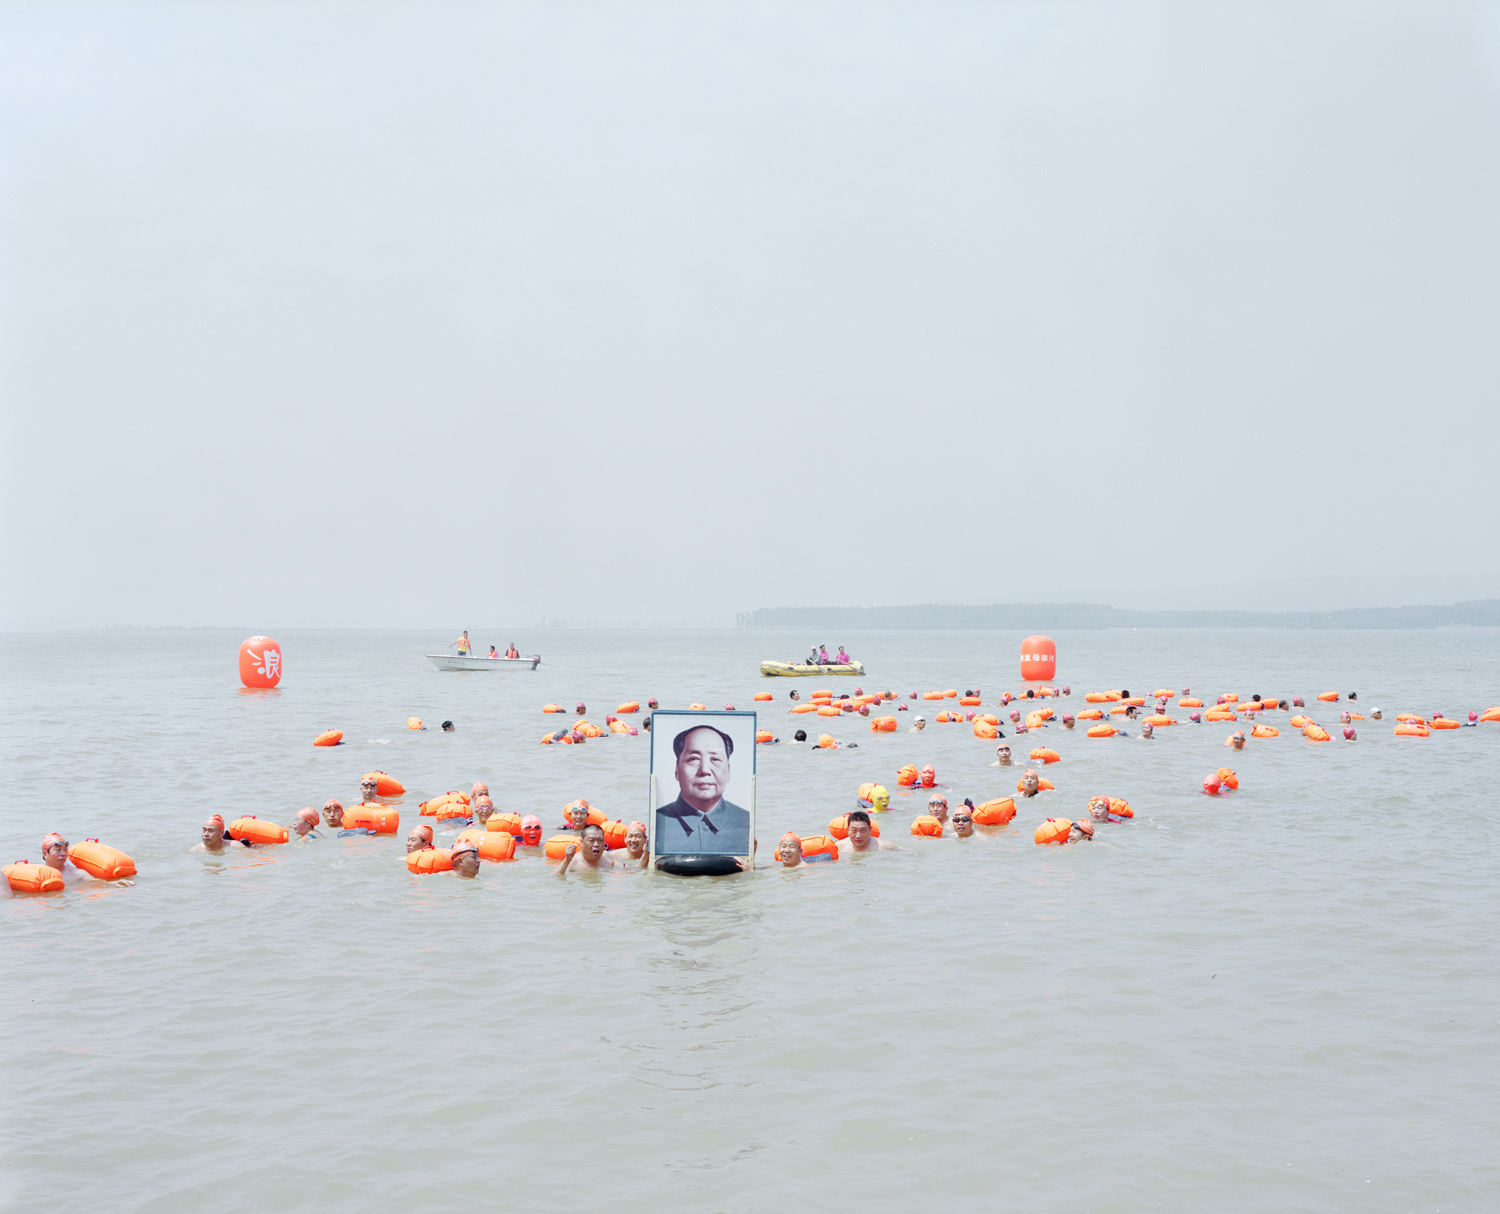 Locals hold a portrait of Mao as they swim across the river, Henan province.